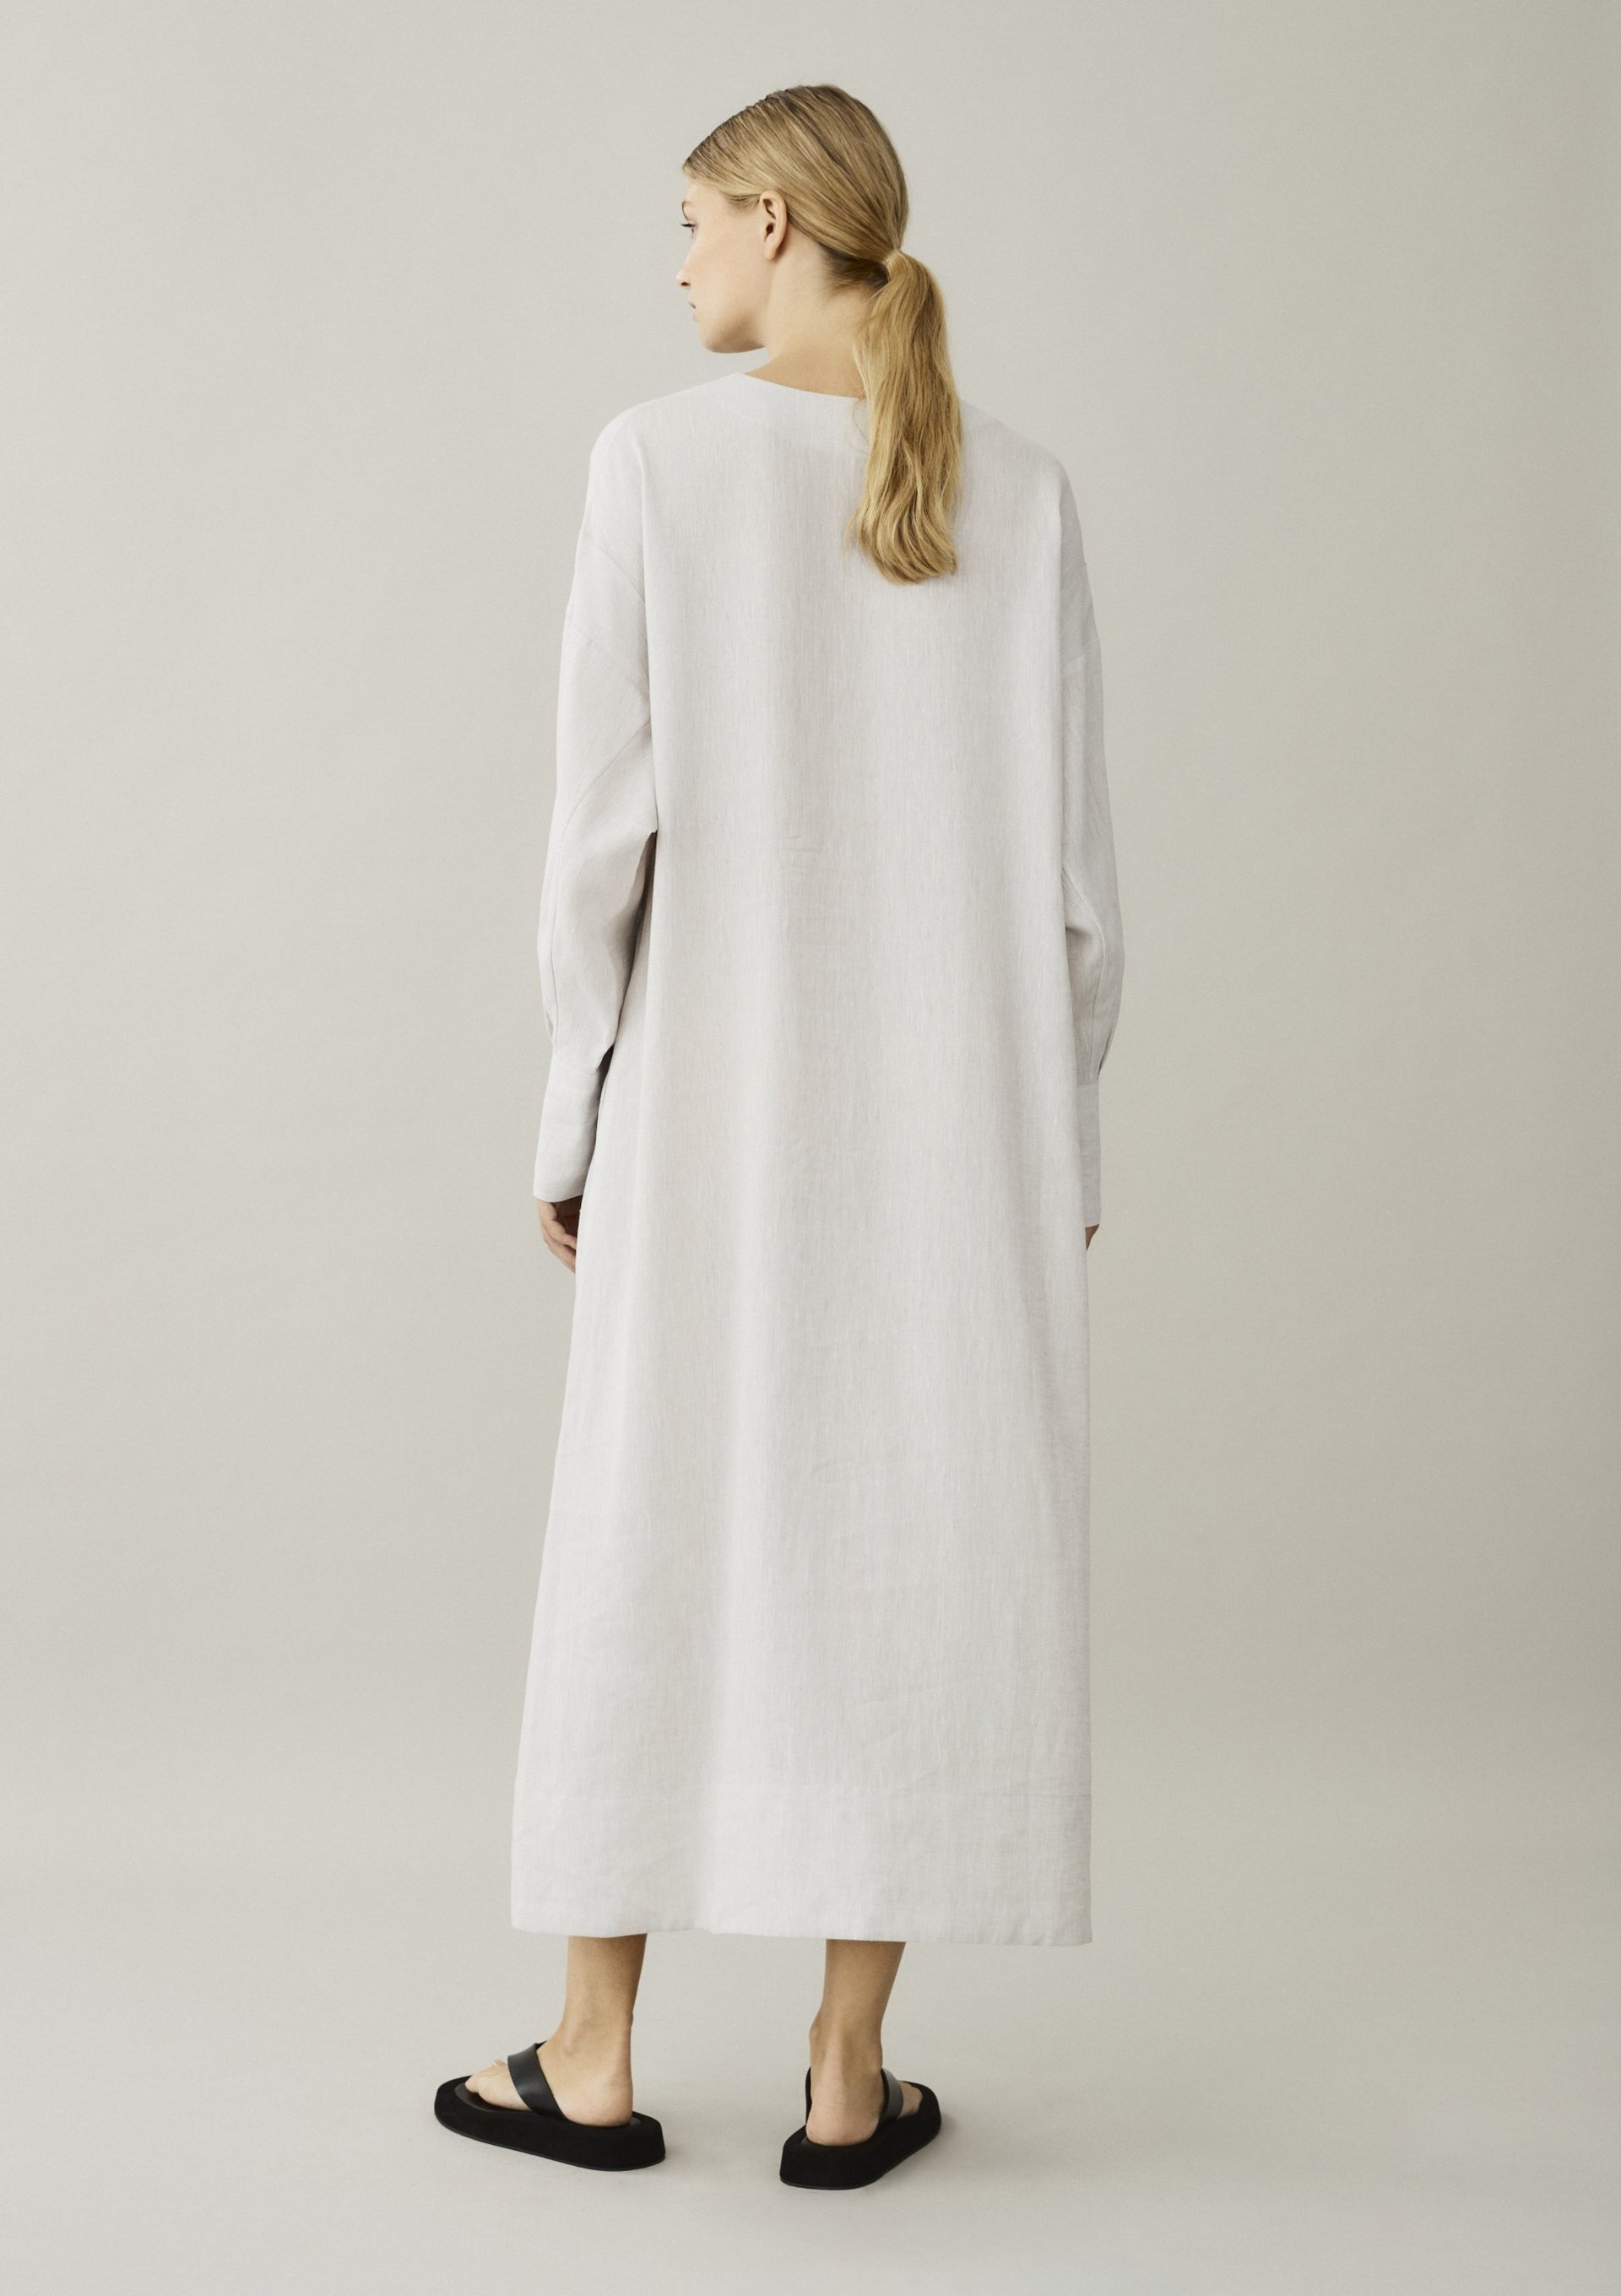 off white linen shirt dress back view